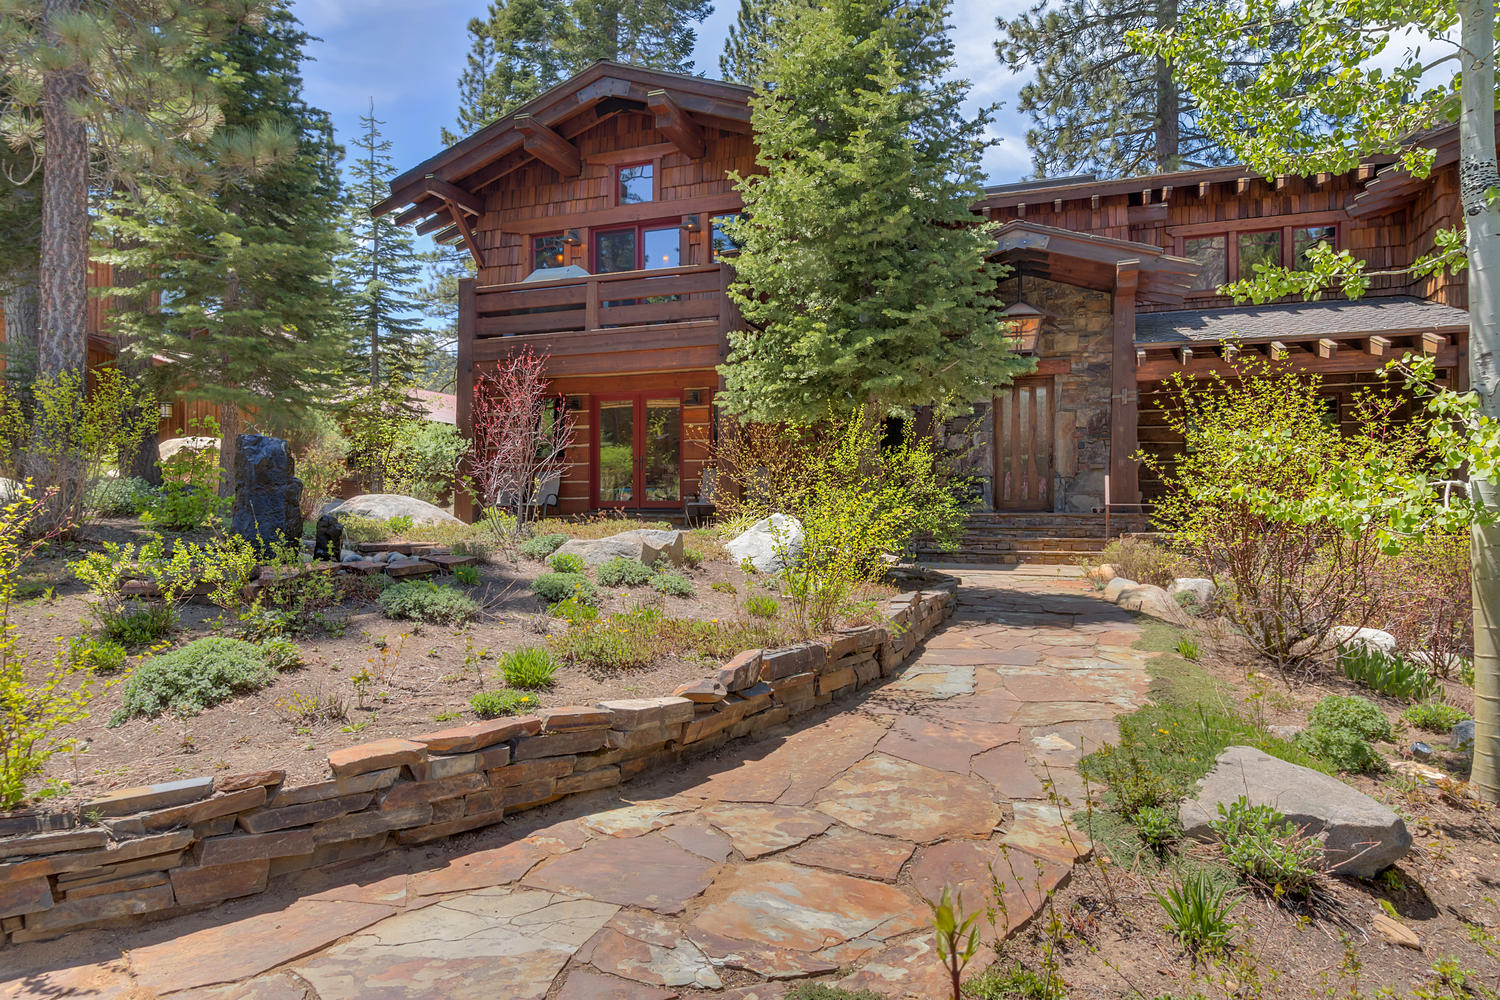 The Resort at Squaw Creek is one of the leading Lake Tahoe lodging accommodations. The hotel features premium Squaw Valley lodging and accommodations for those looking to take in the surroundings among the magnificence of an alpine setting.